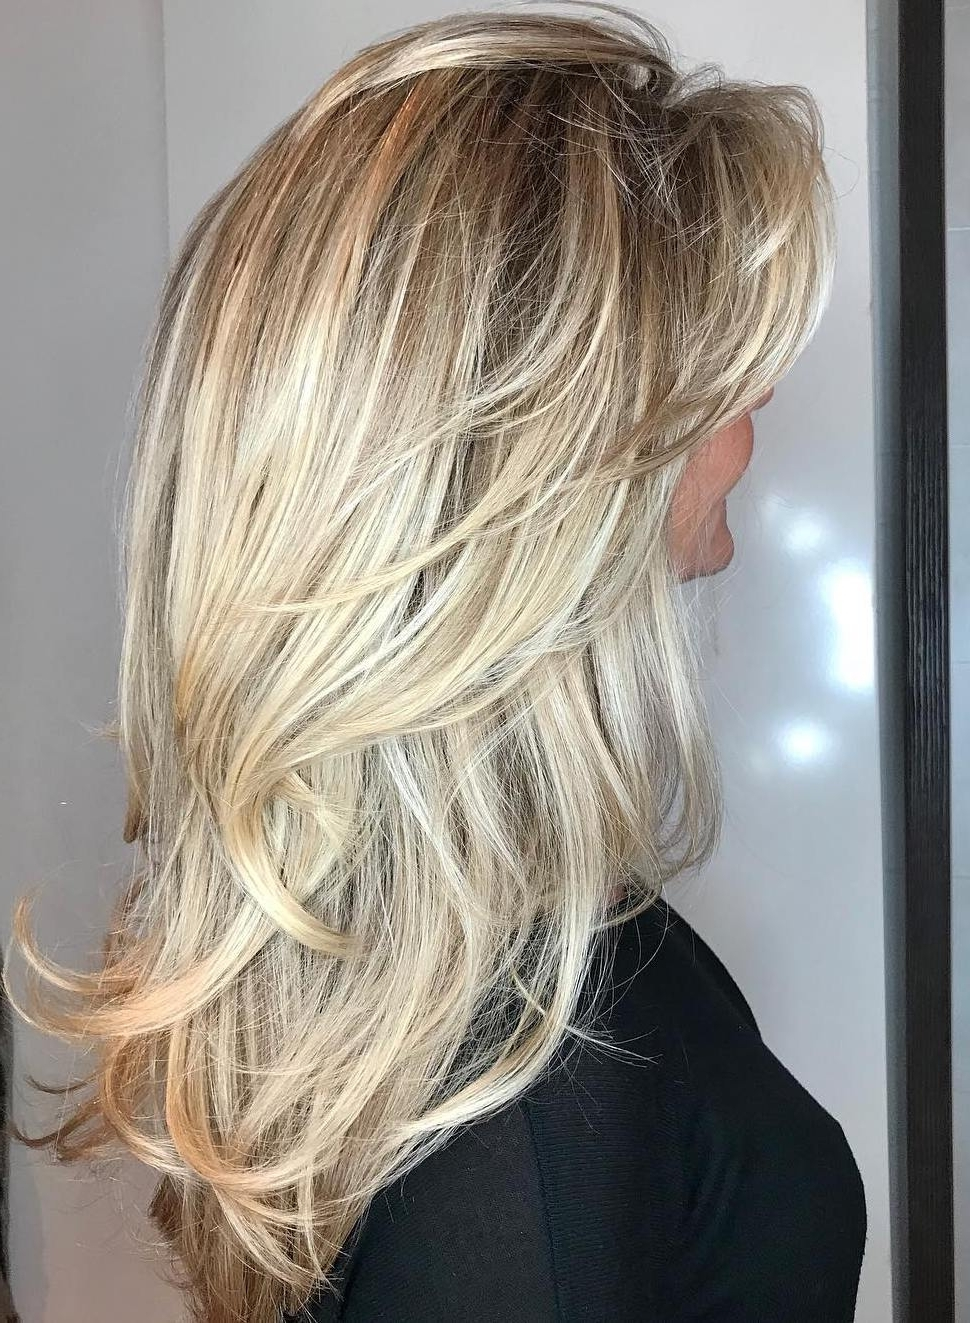 Trendy Shoulder Grazing Strawberry Shag Blonde Hairstyles Regarding 50 Cute Long Layered Haircuts With Bangs (View 13 of 20)